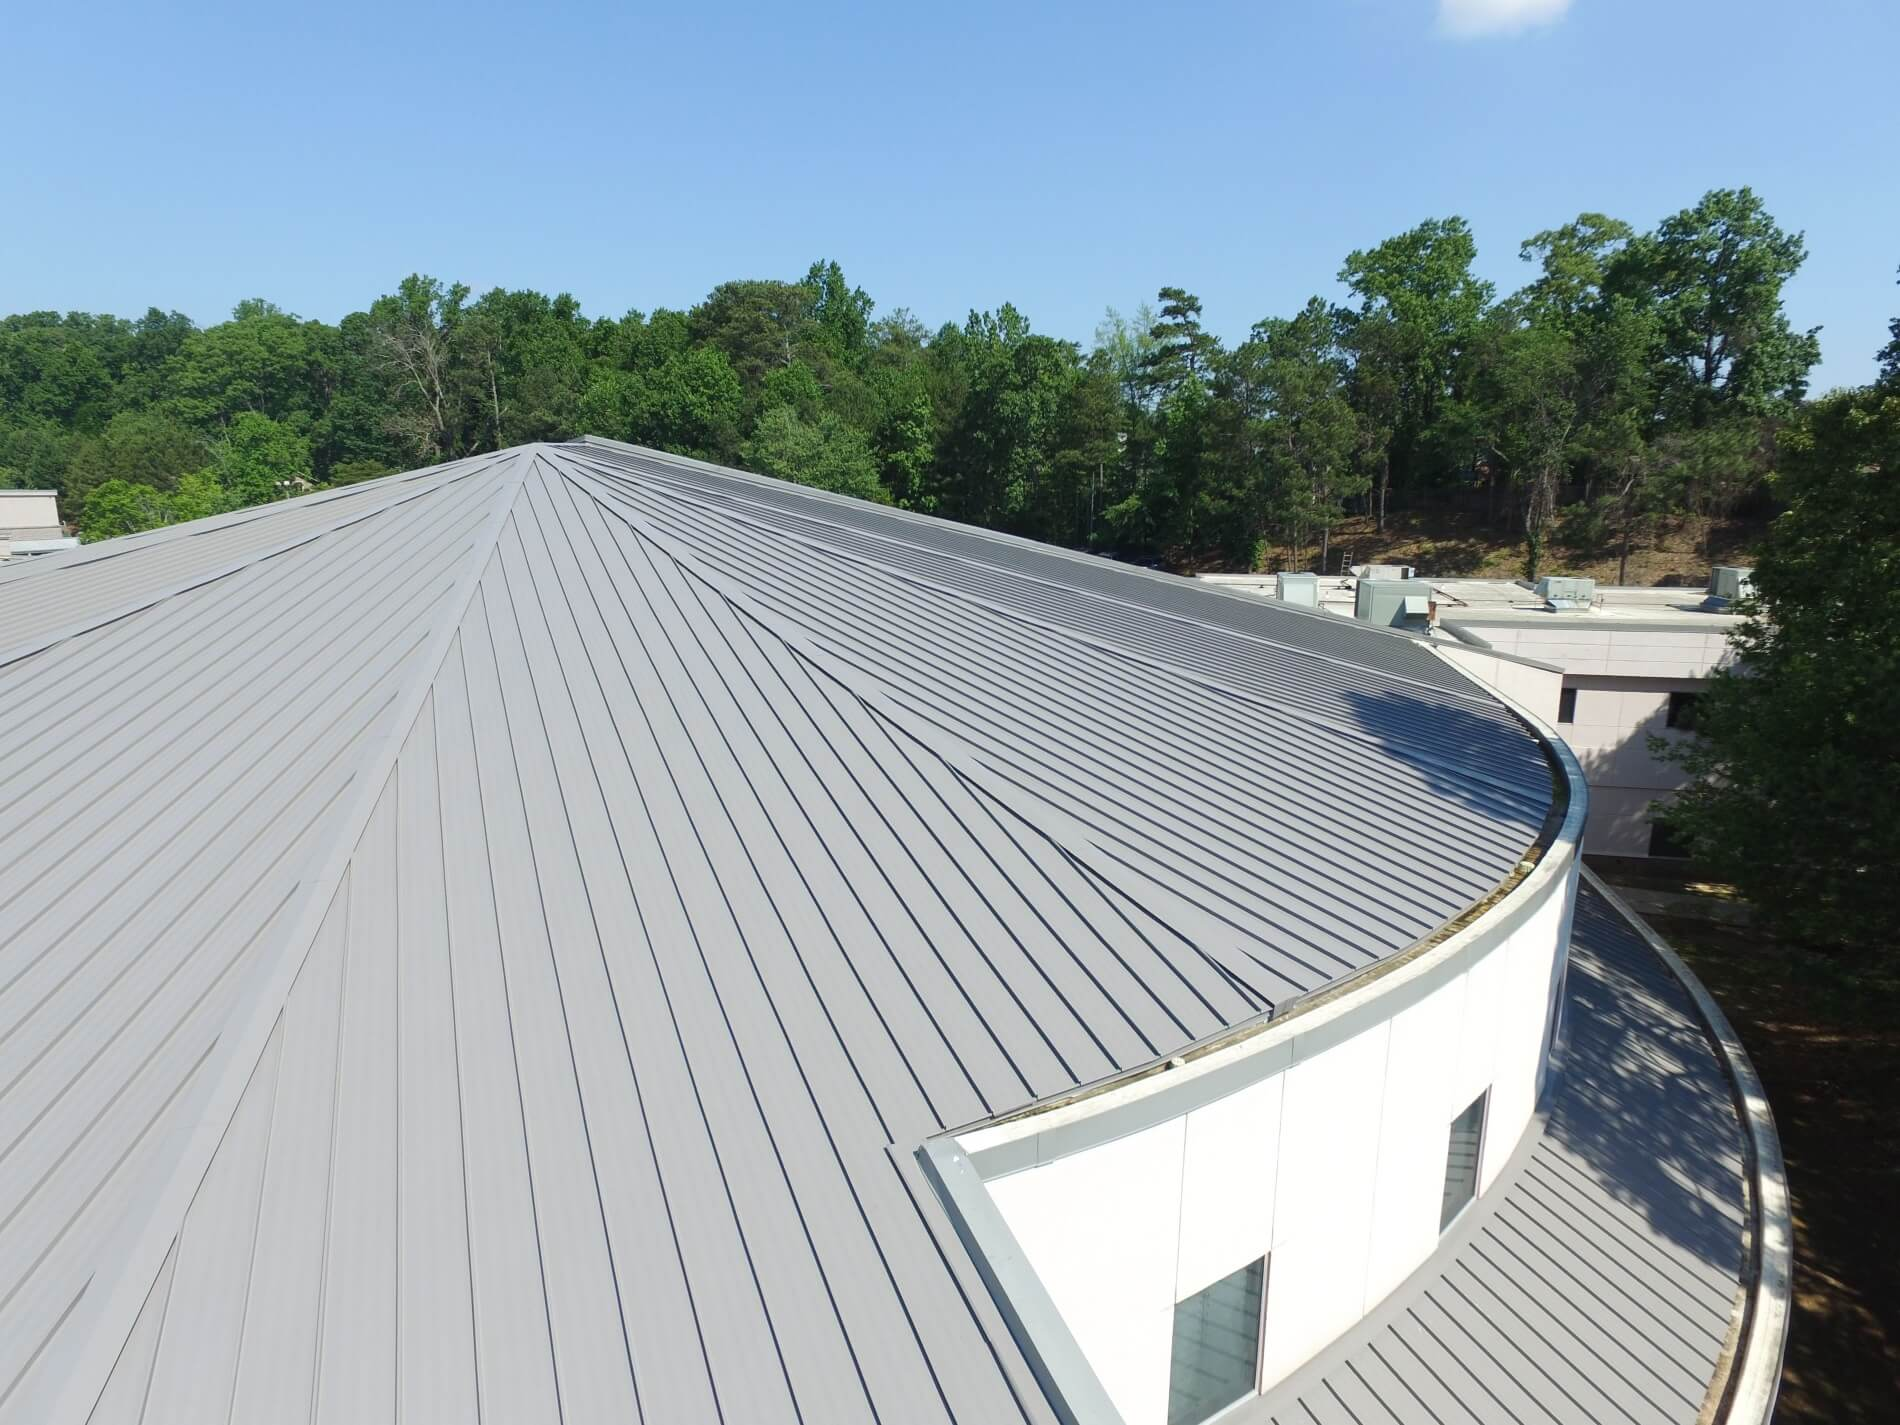 Retrofit roofing project challenges installers' measuring skills with multiple hips and tapered panels